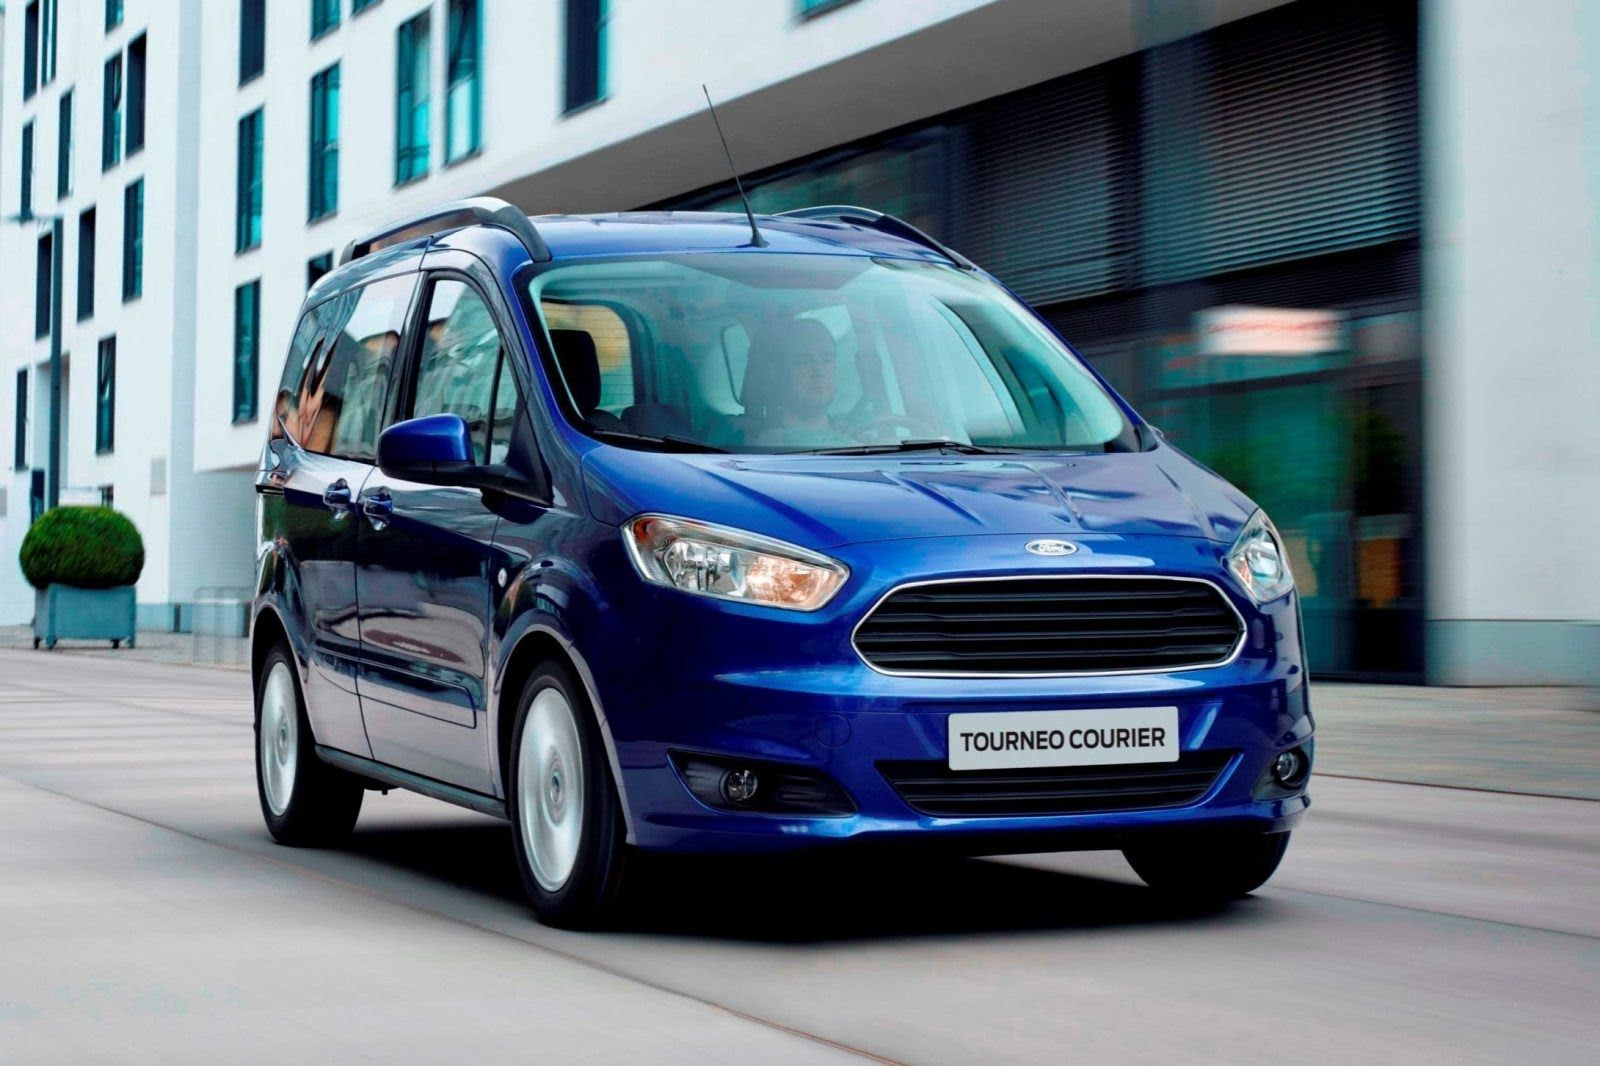 Ford tourneo courier pictures to pin on pinterest - Kar